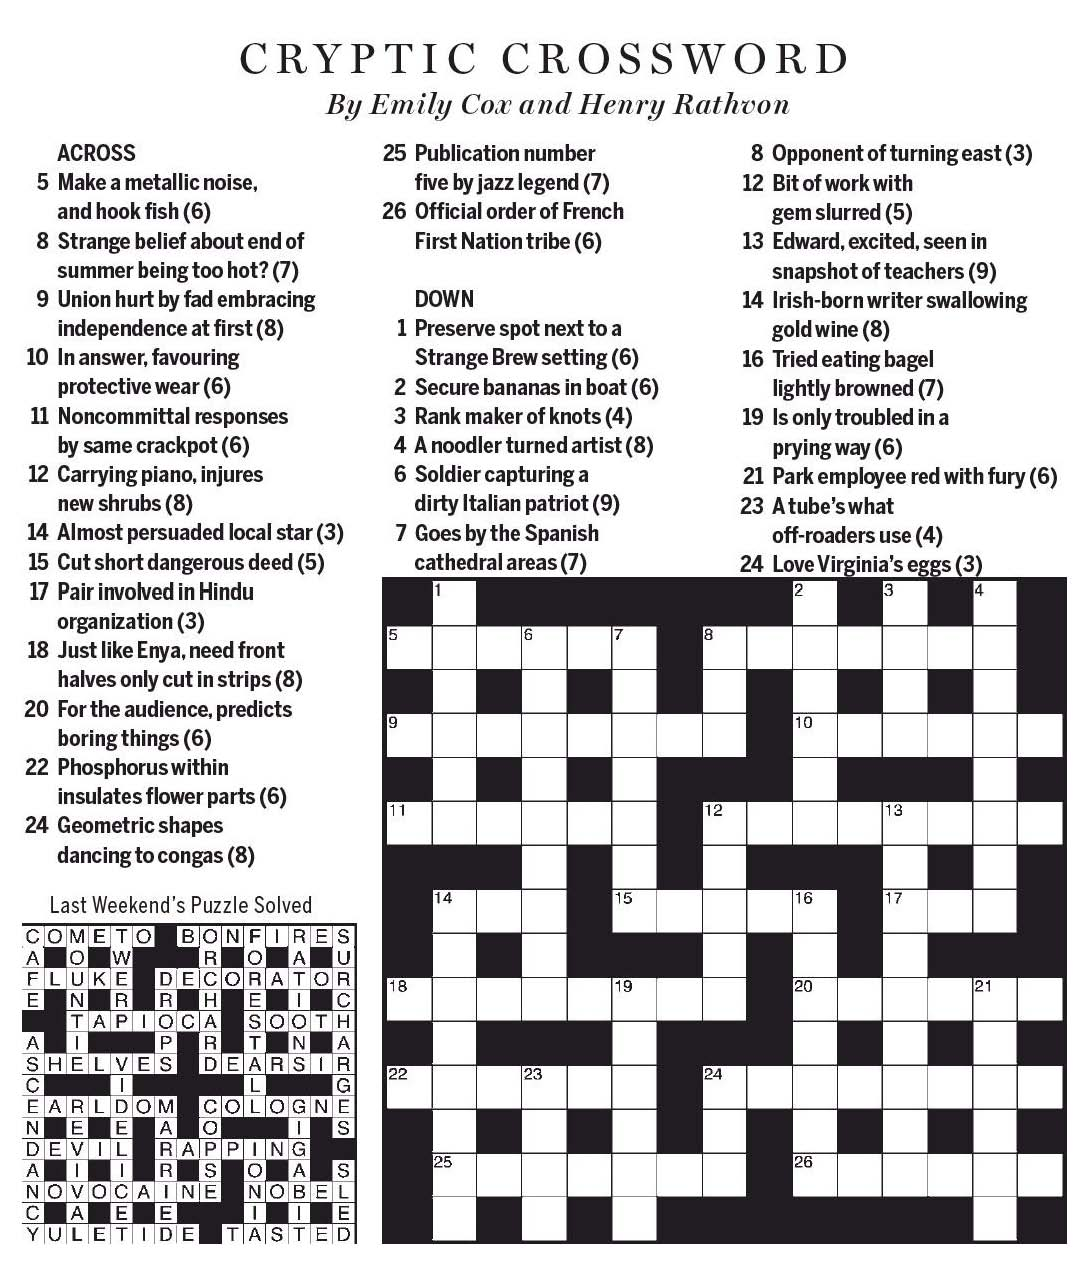 National Post Cryptic Crossword Forum 2017